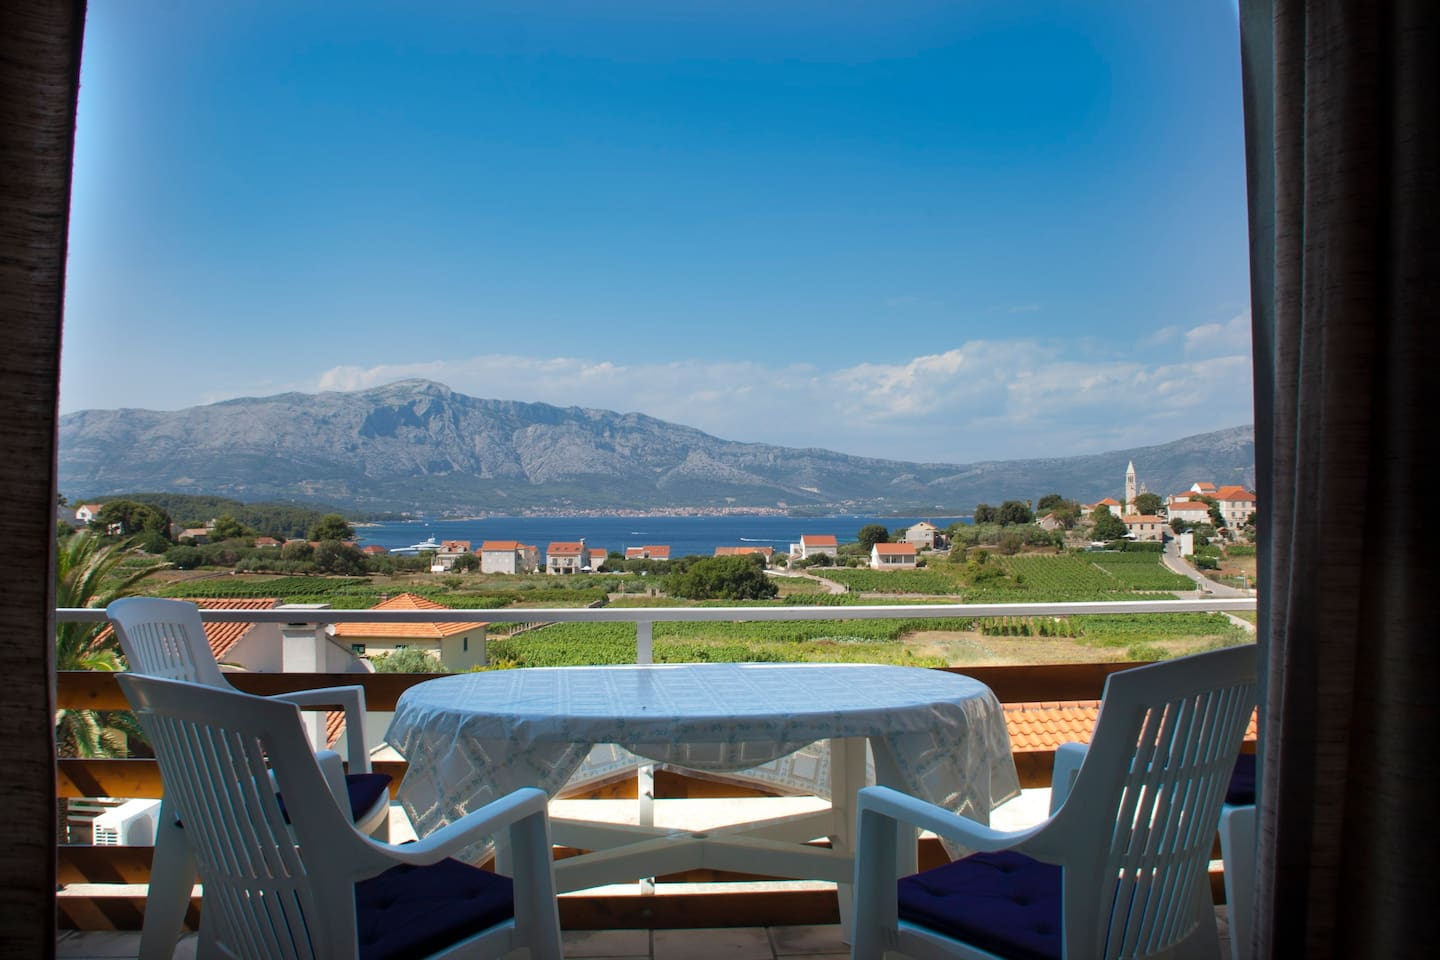 Balcony with room for 6 persons. Magnificent view from South side of house, place where you can drink wine with people you love and watch sunrise and sunset.